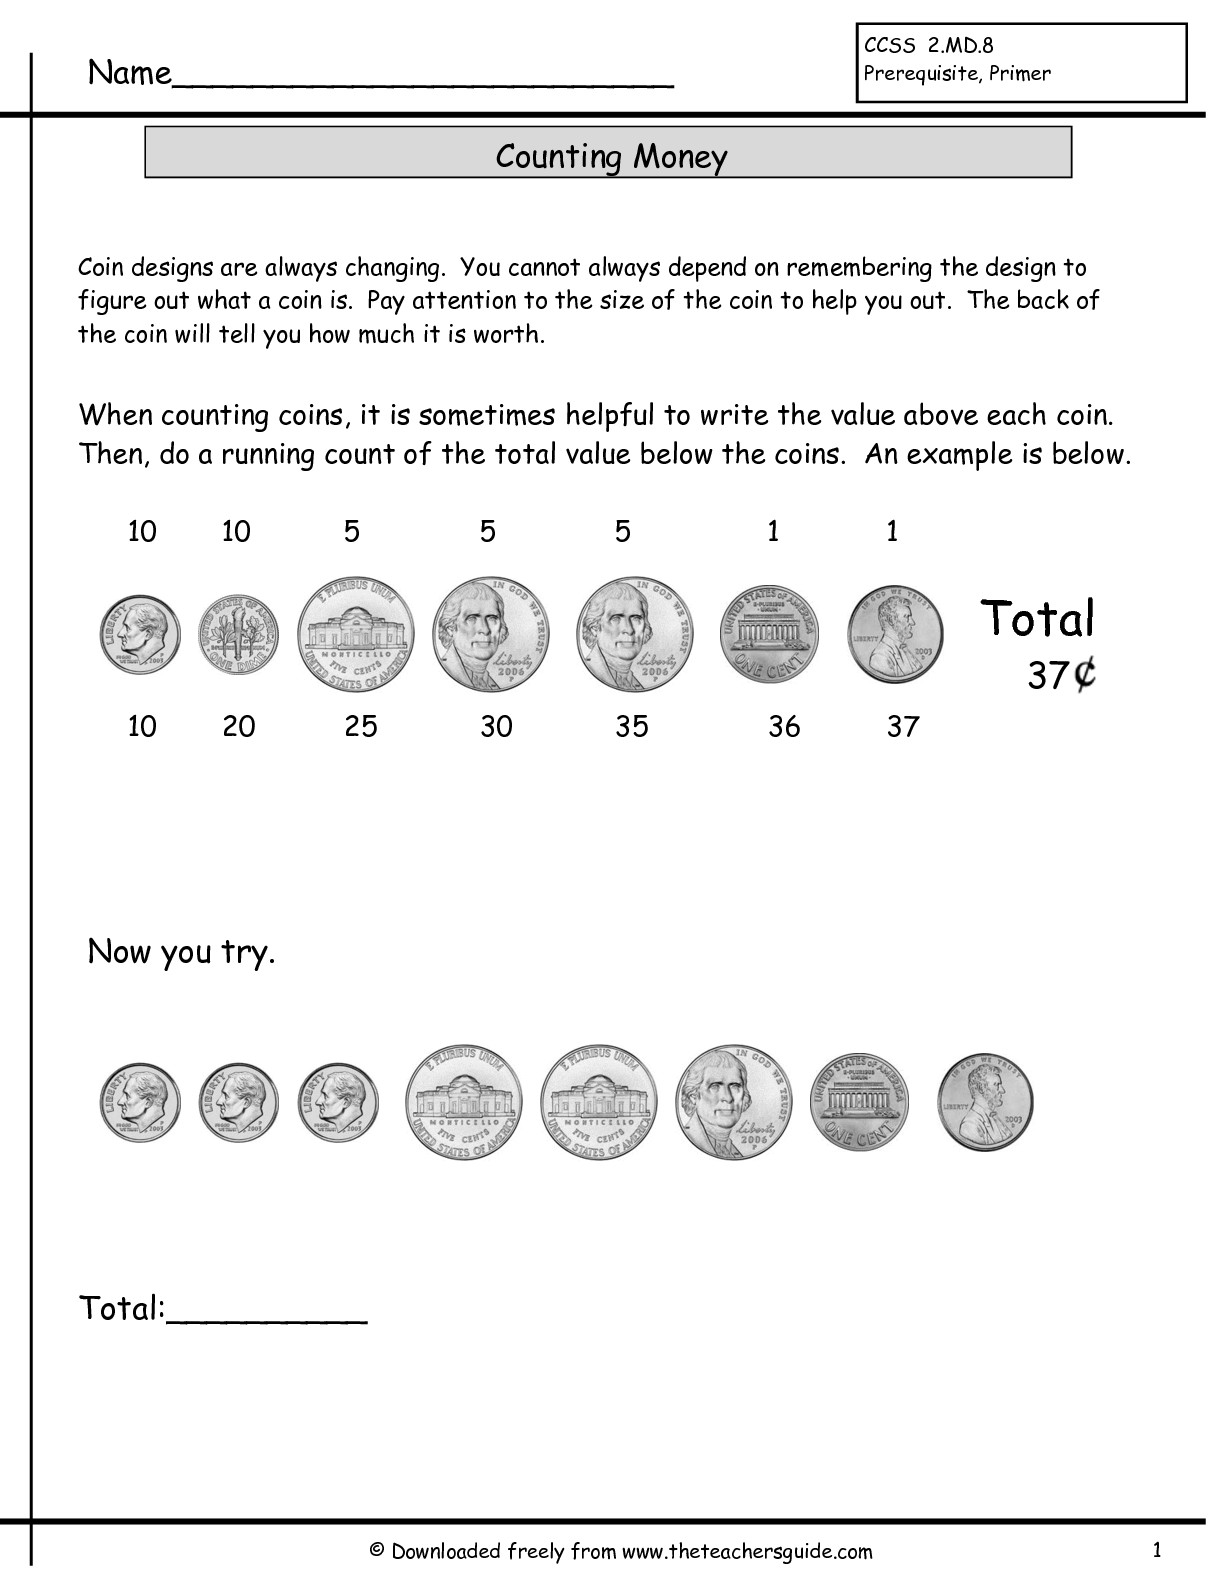 12 Best Images Of Coin Counting Money Worksheets